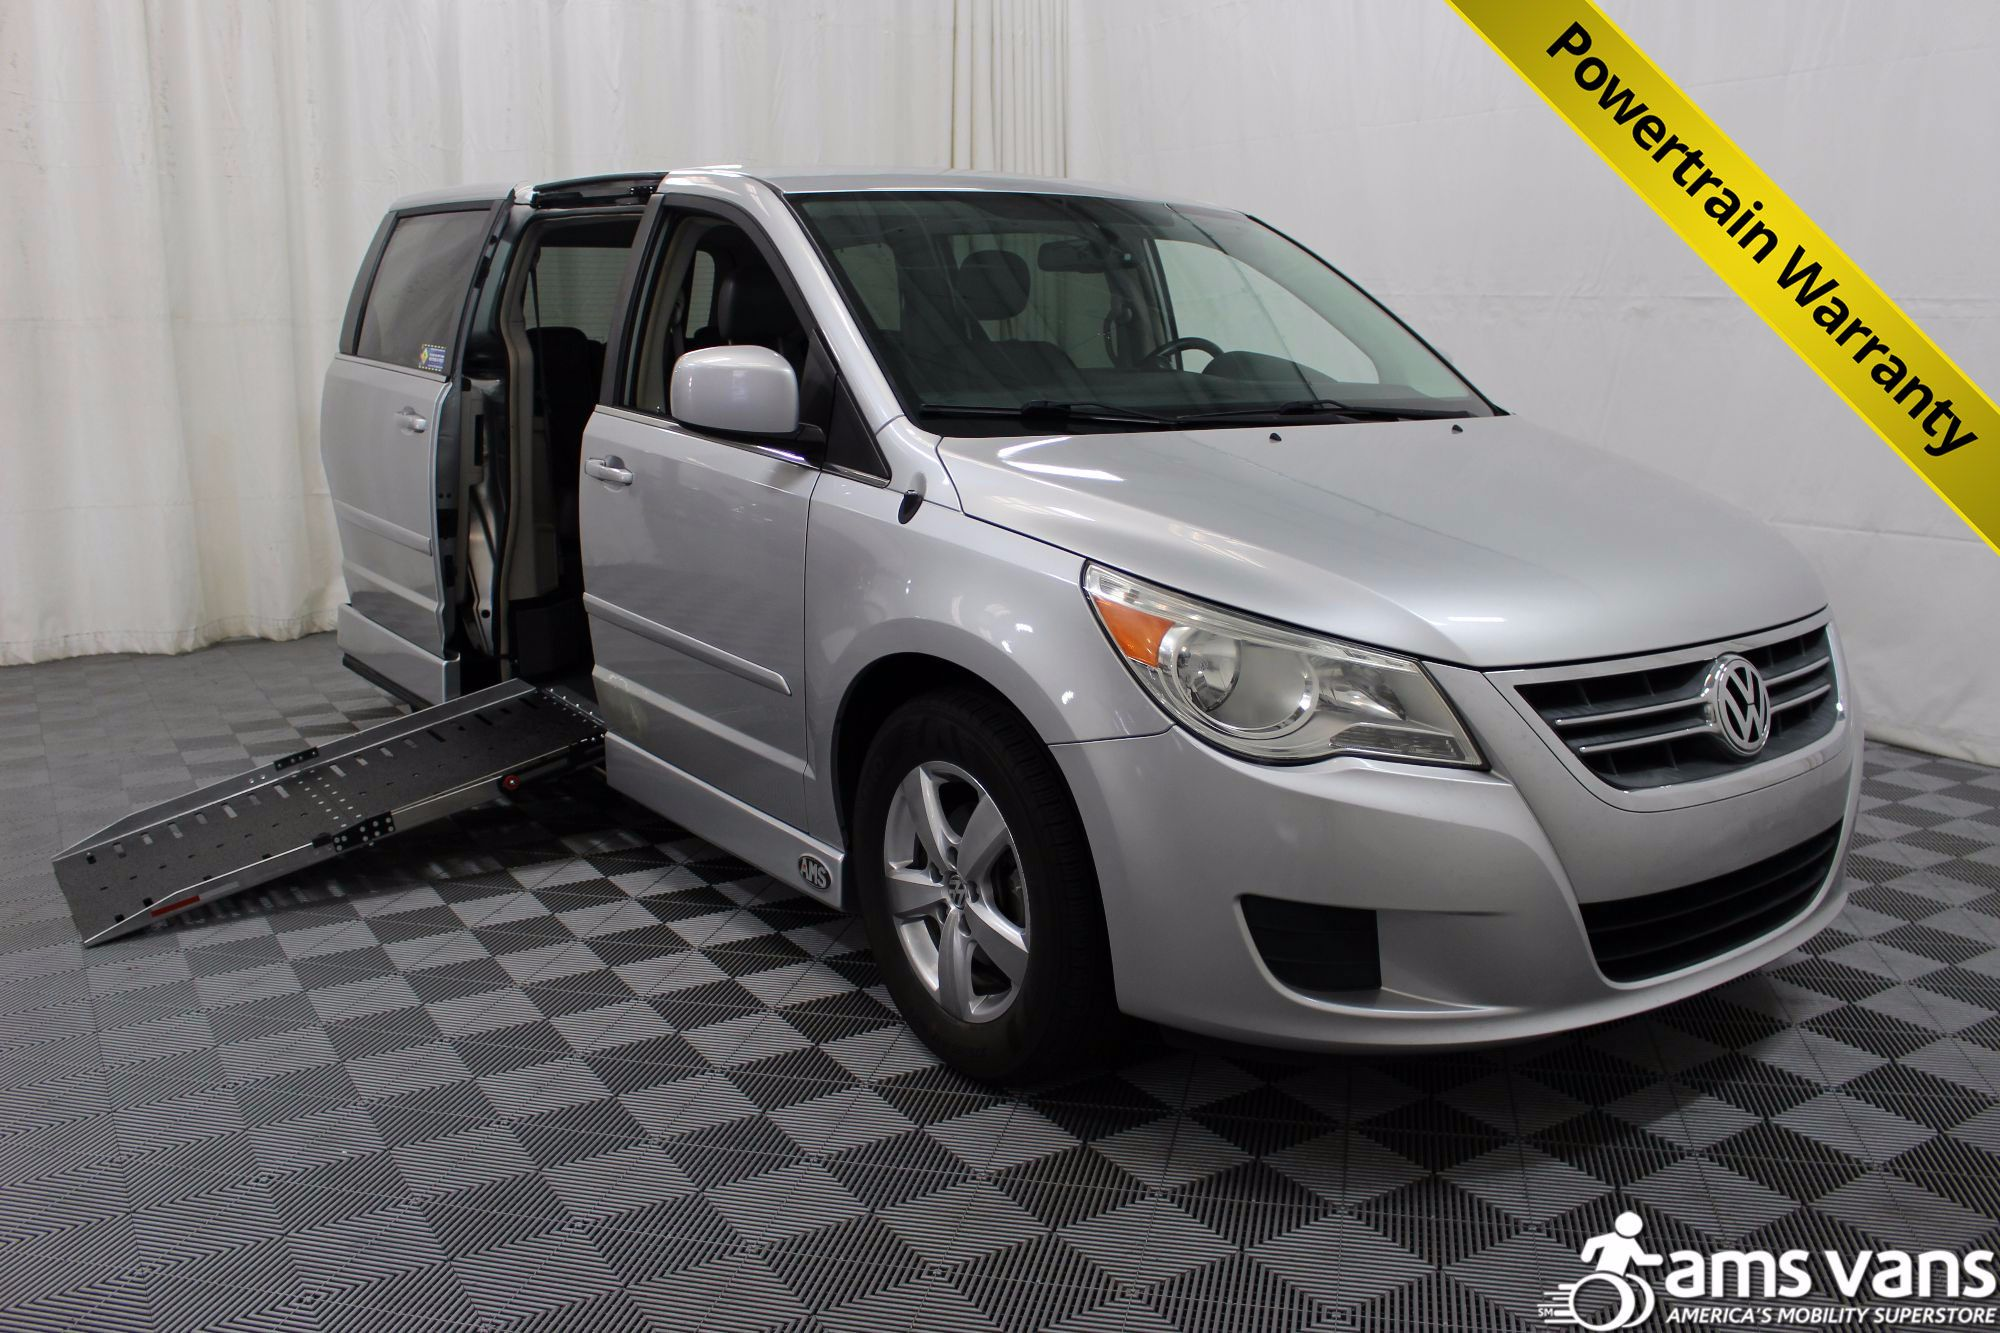 2010 Volkswagen Routan SE Wheelchair Van For Sale #1